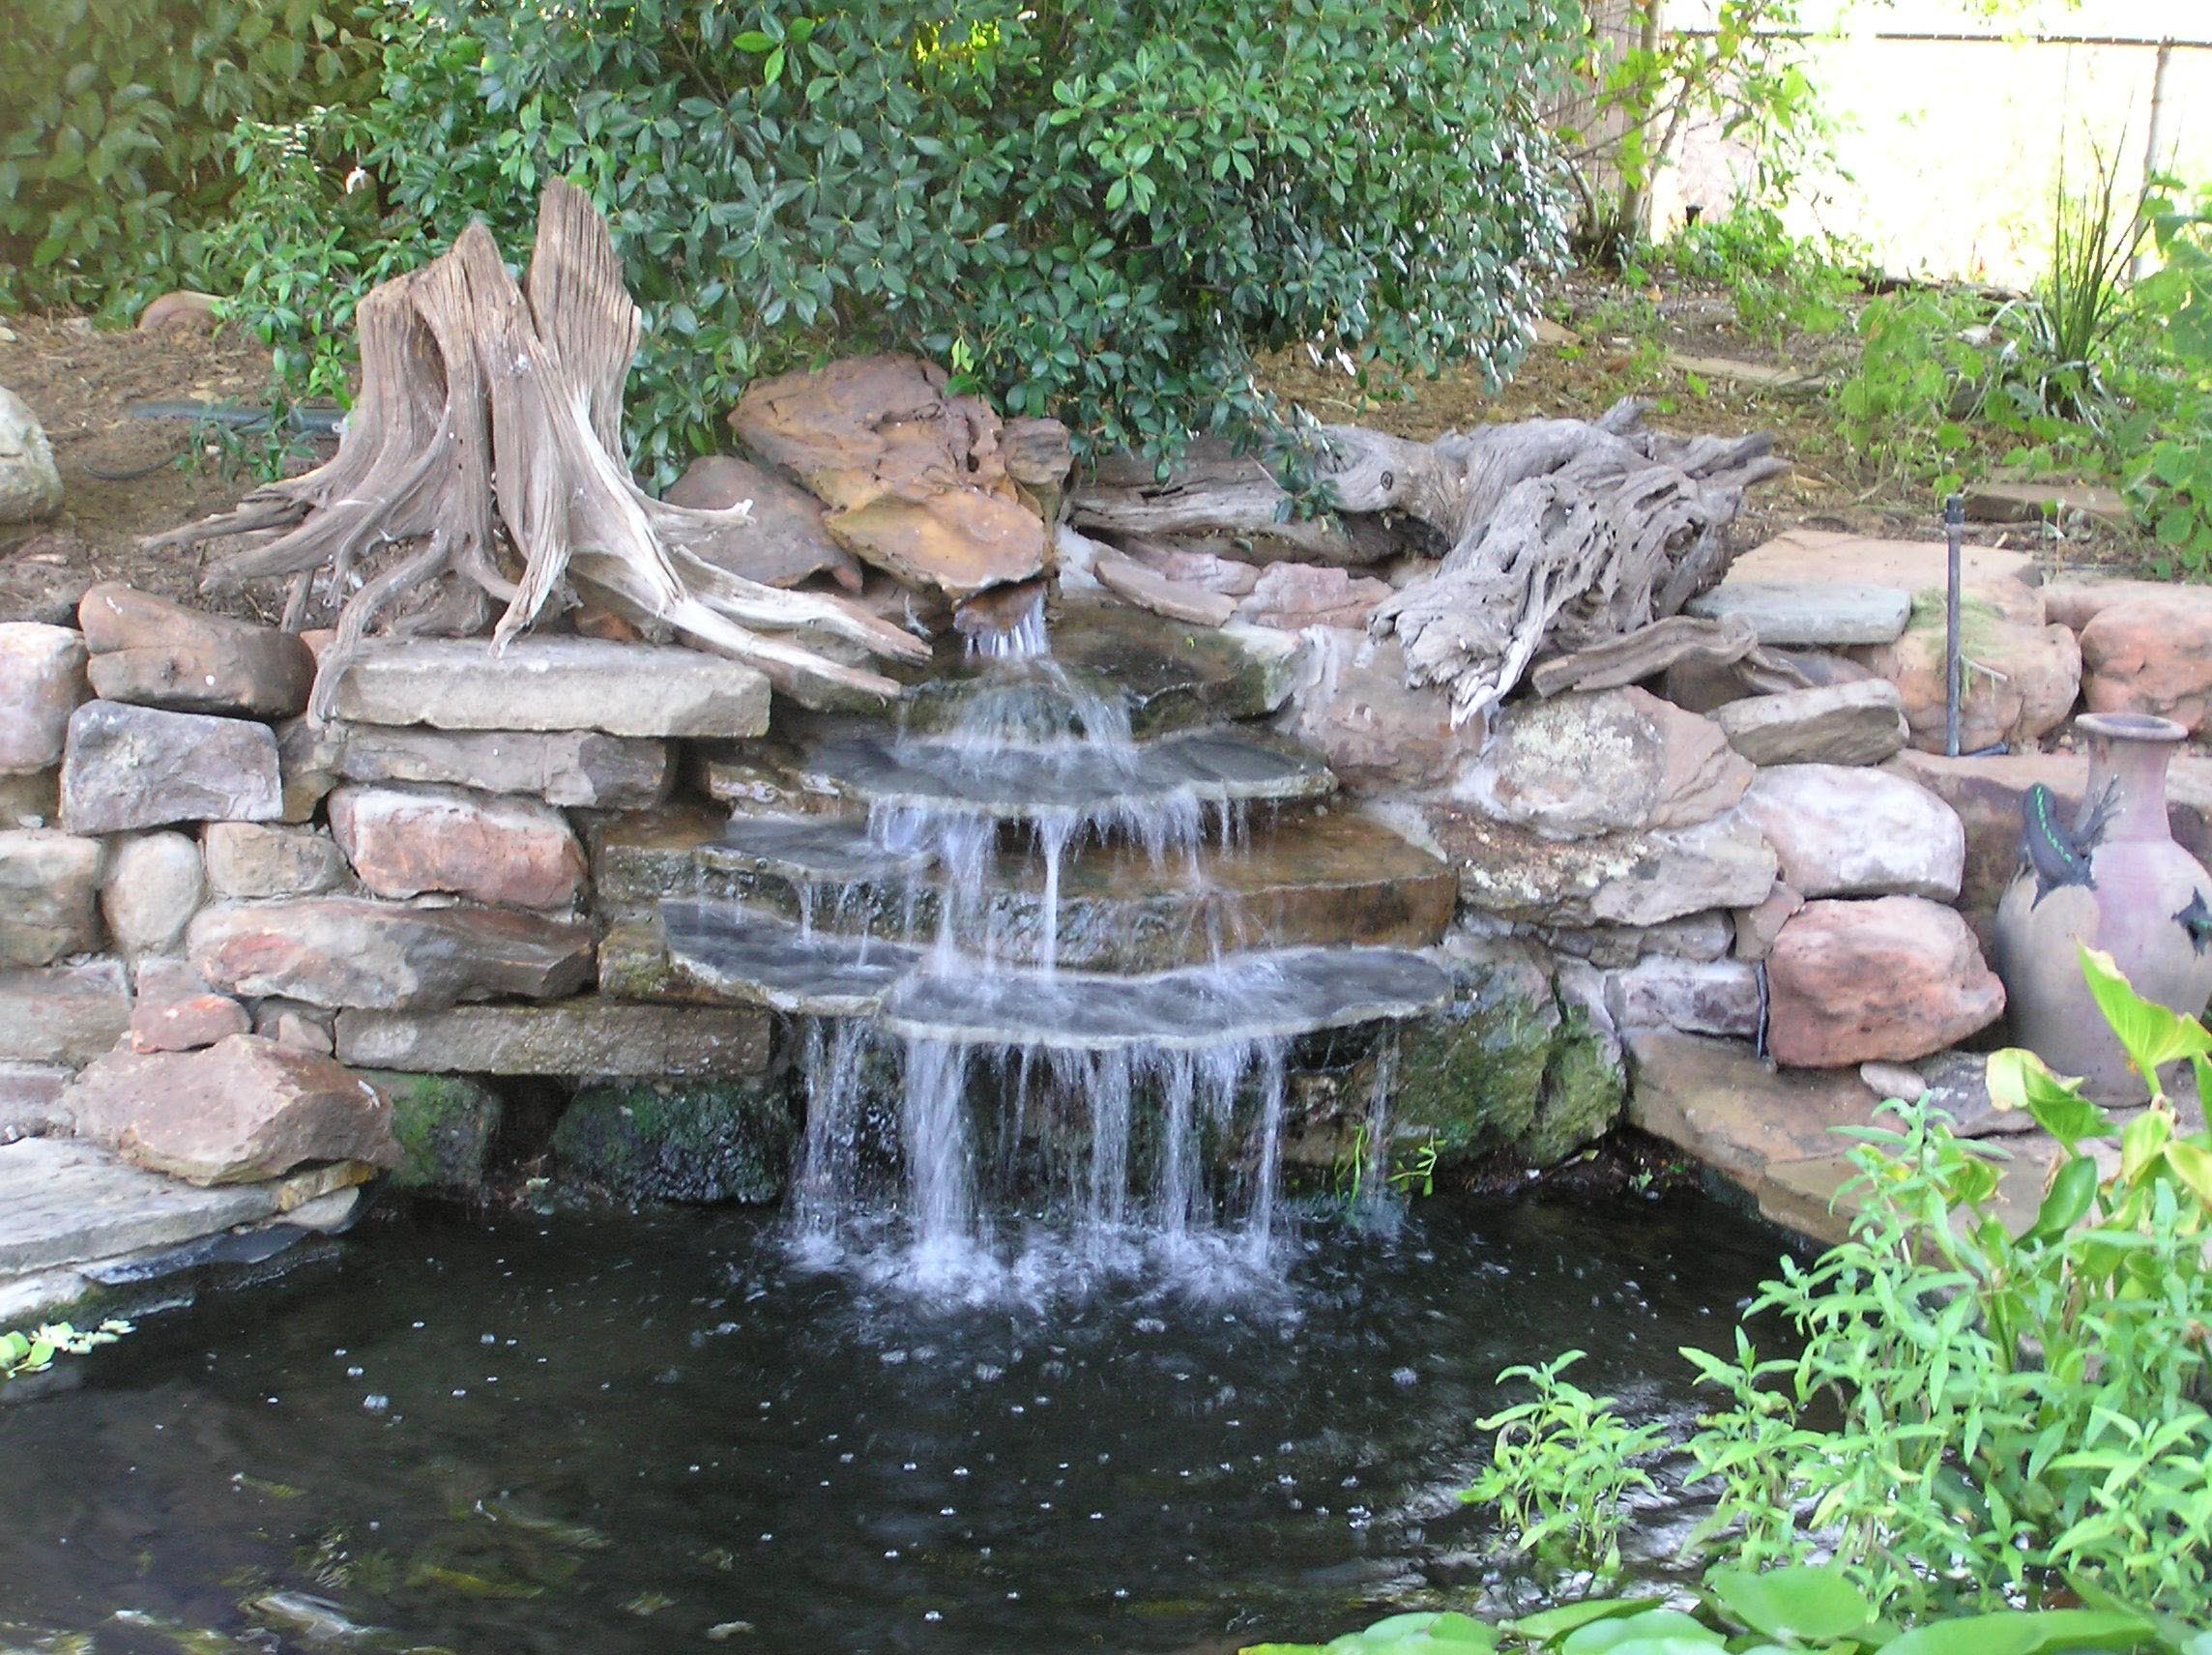 Garden pond waterfall designs backyard design ideas for Backyard pond ideas with waterfall